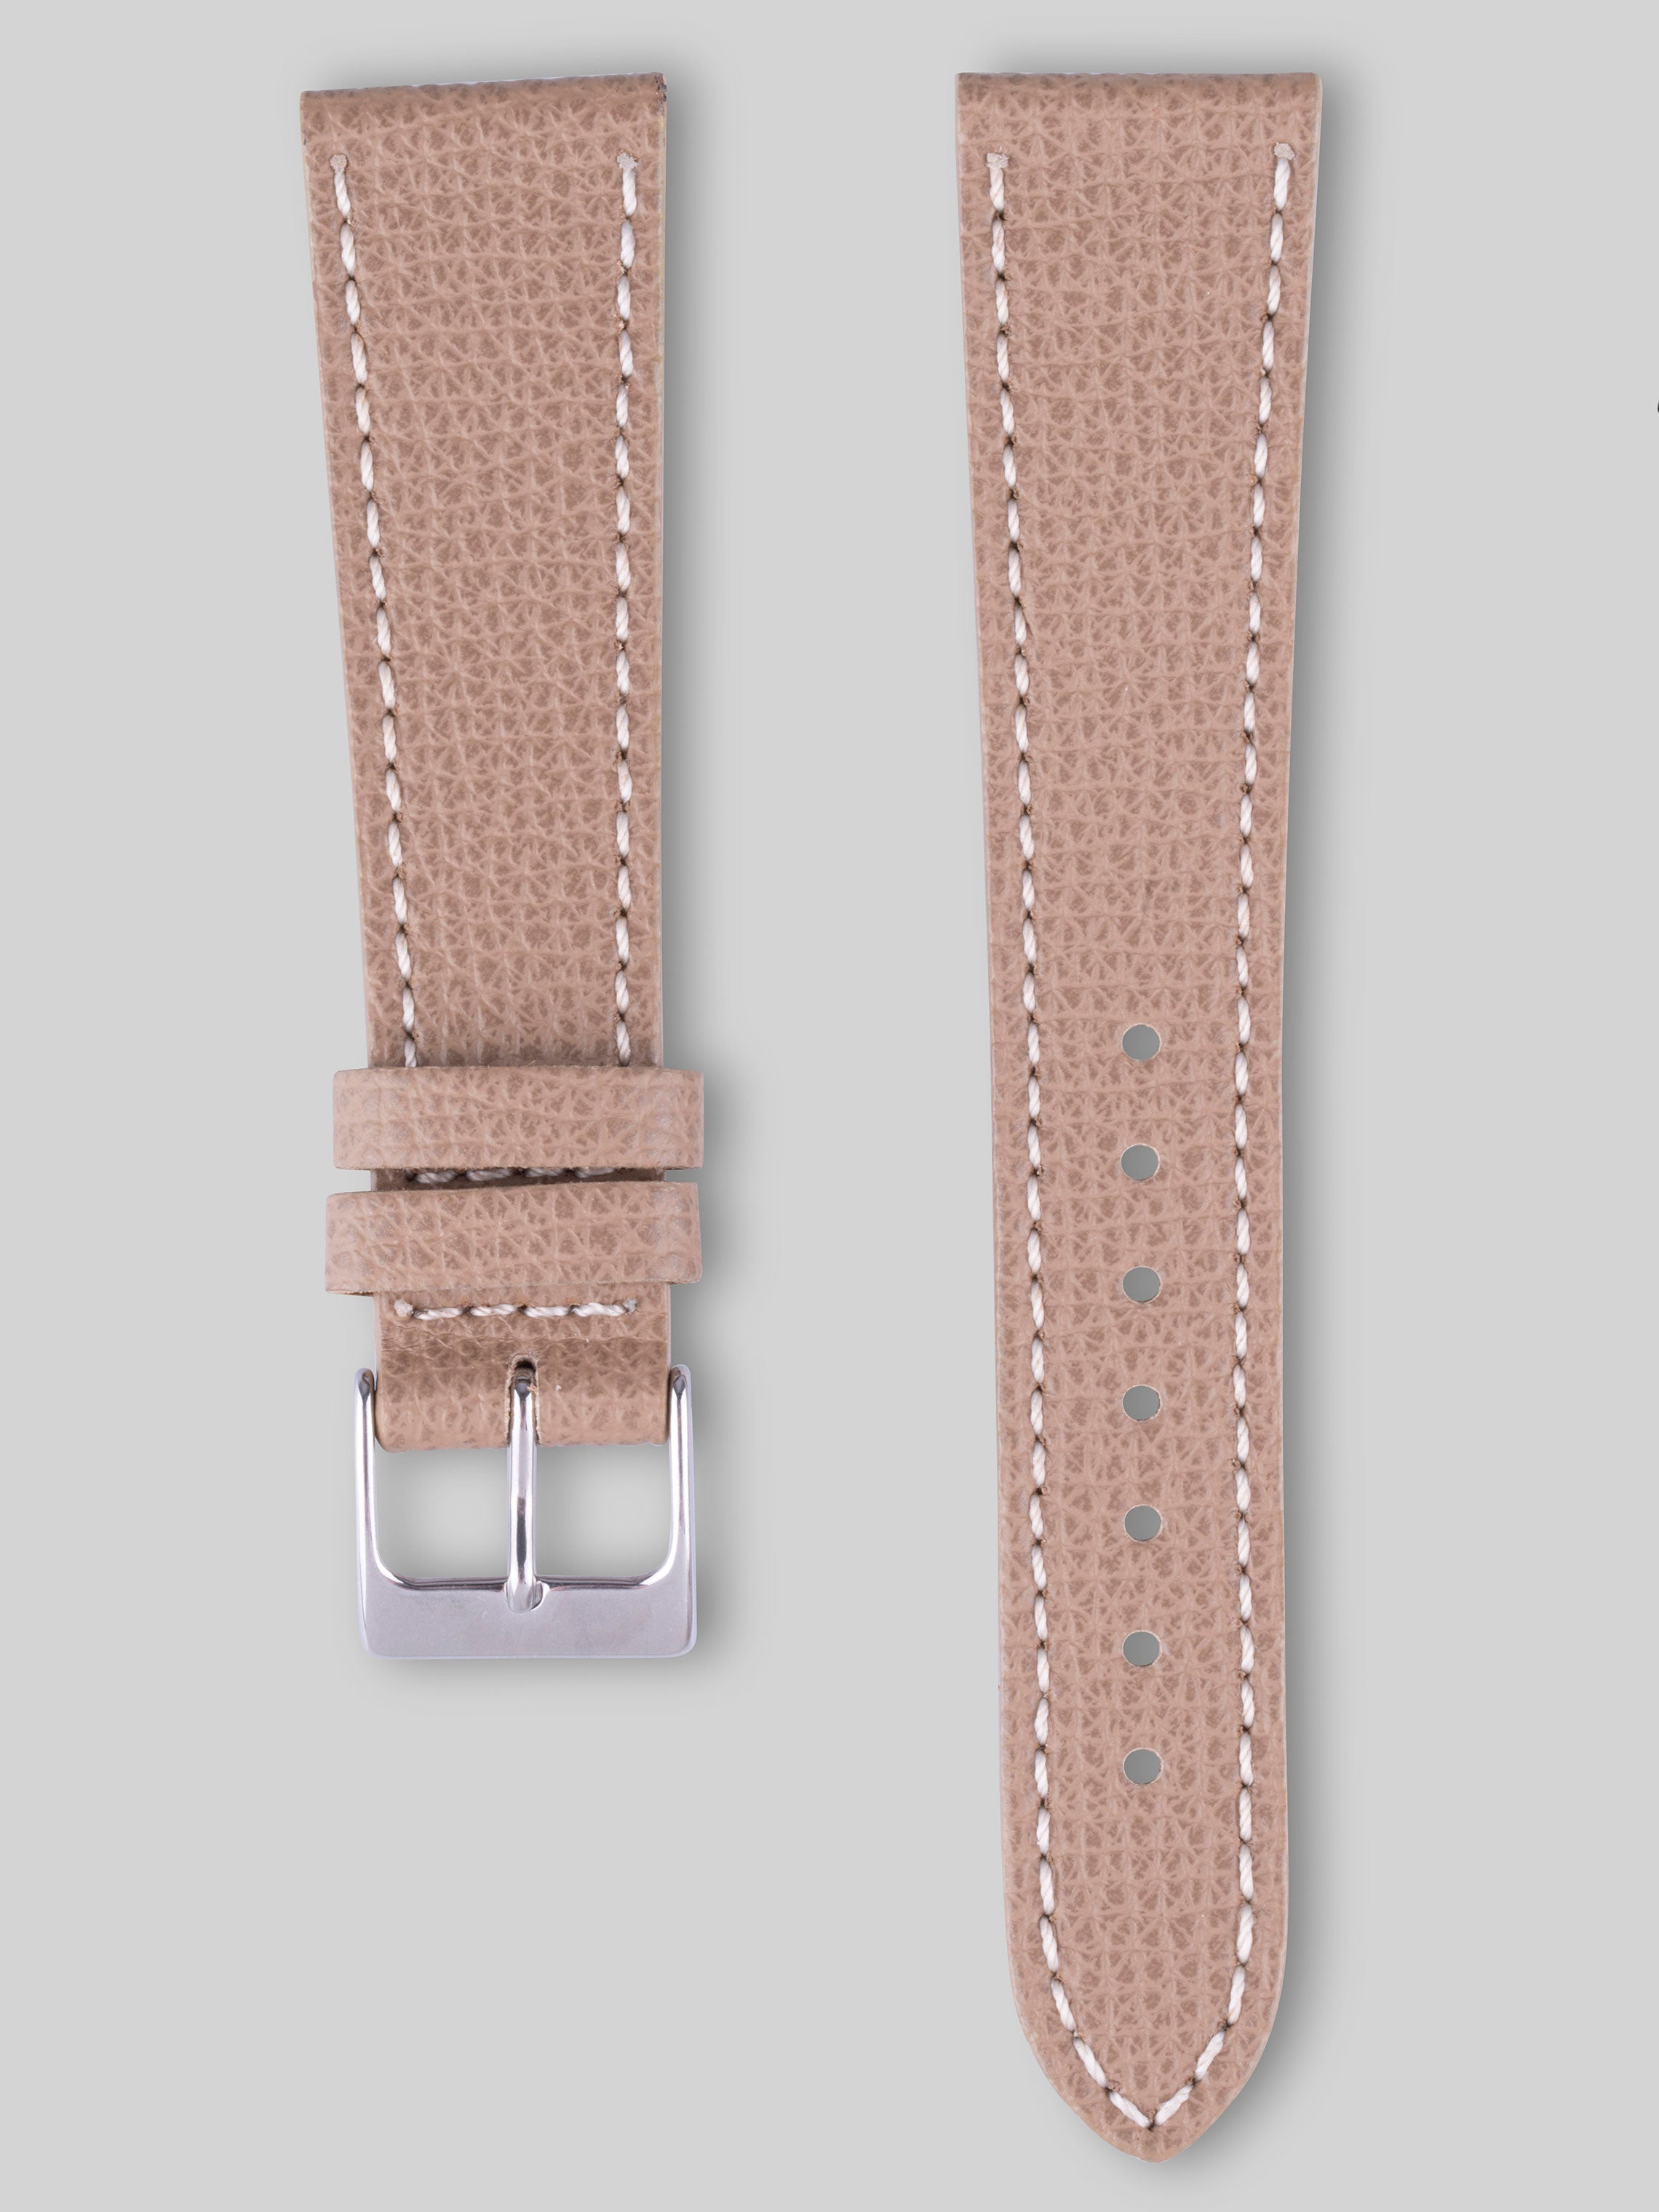 Textured Calfskin Watch Strap - Apollo